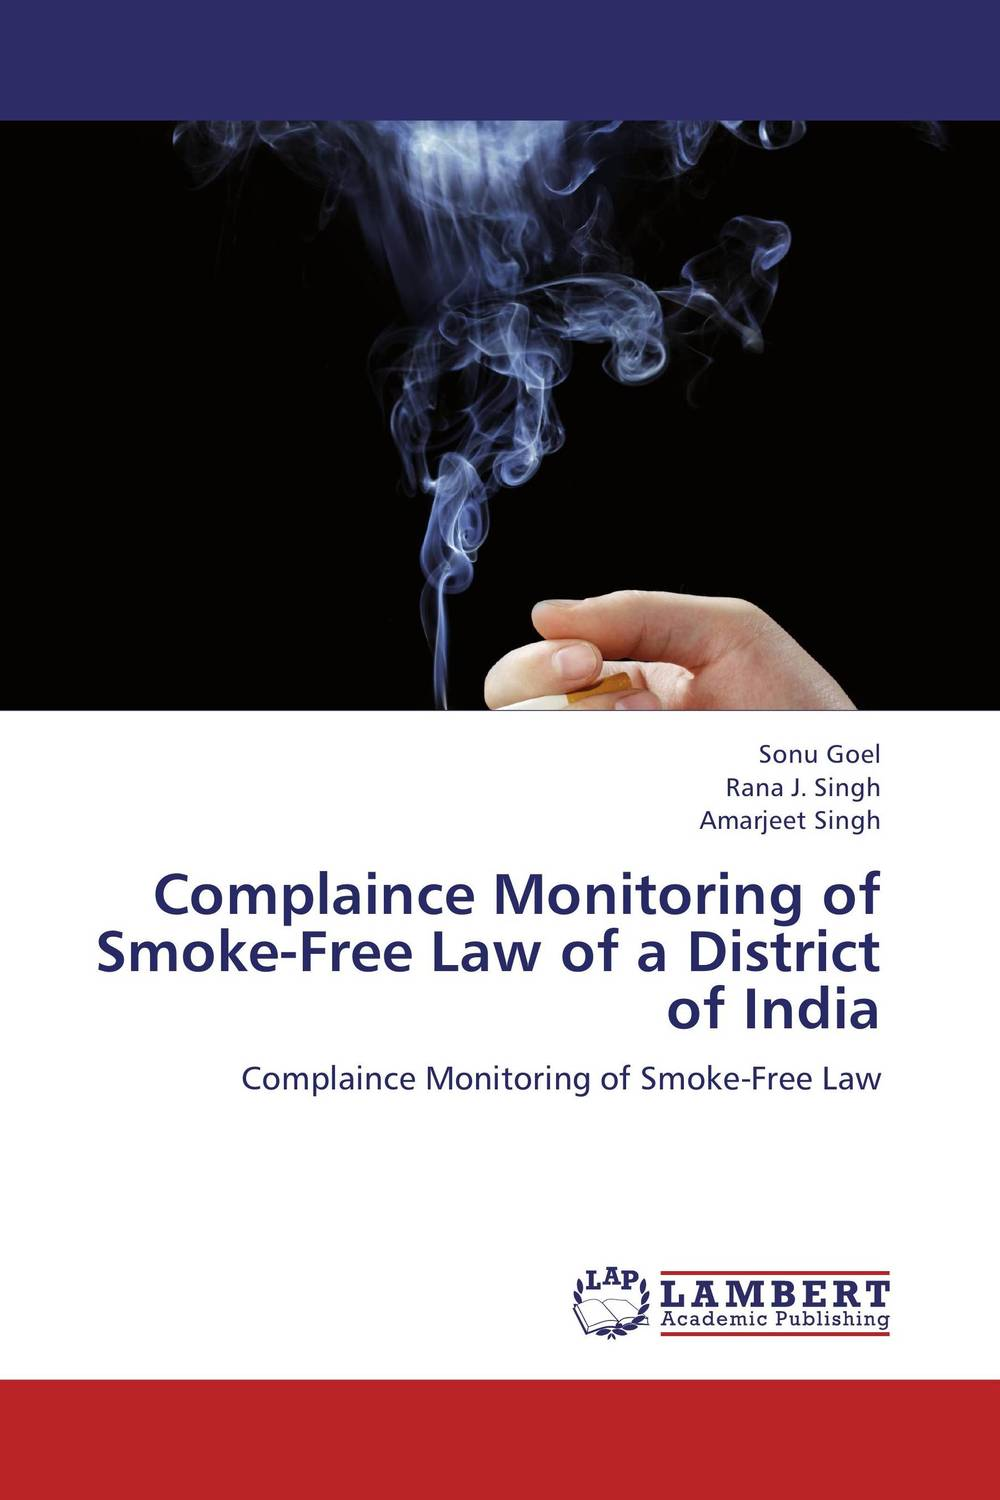 Complaince Monitoring of Smoke-Free Law of a  District of India